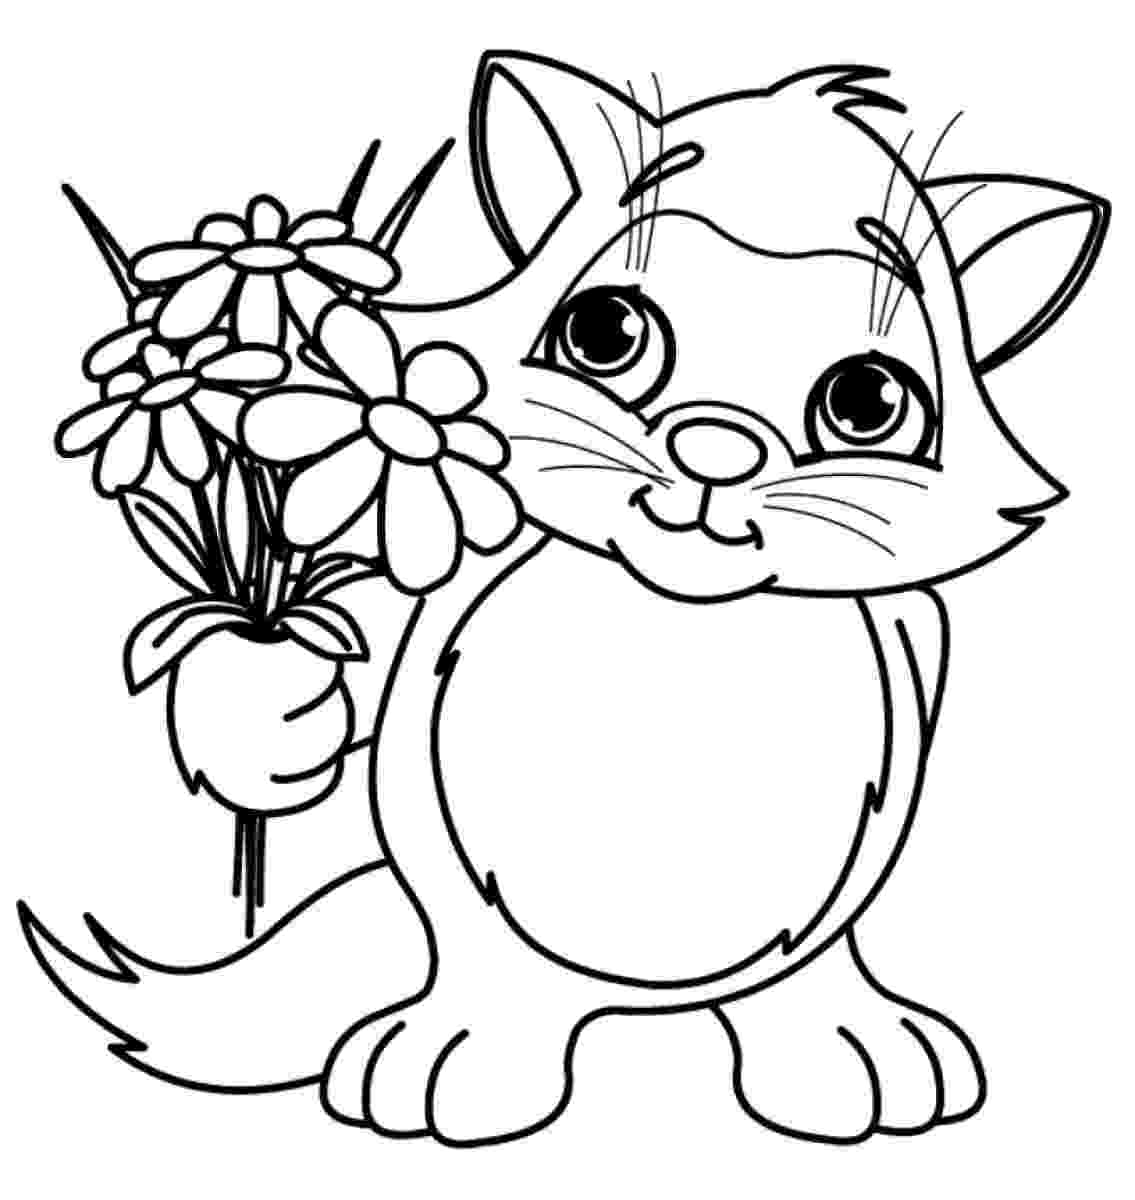 flowers coloring pages for kids free printable flower coloring pages for kids best for flowers pages coloring kids